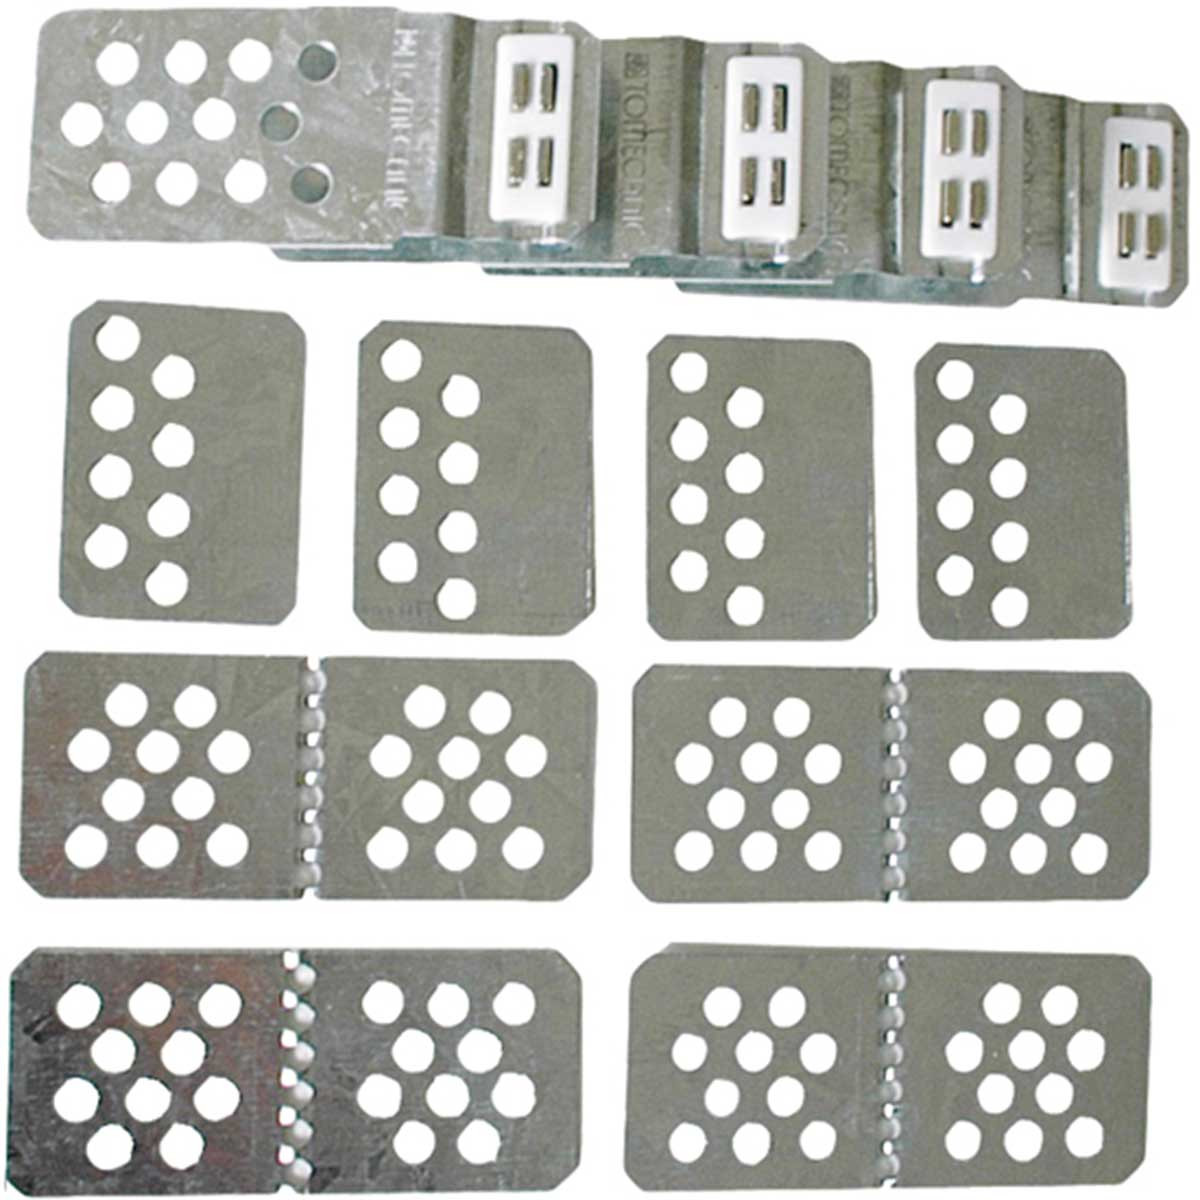 Tomecanic Magnetic Tile Access Panel